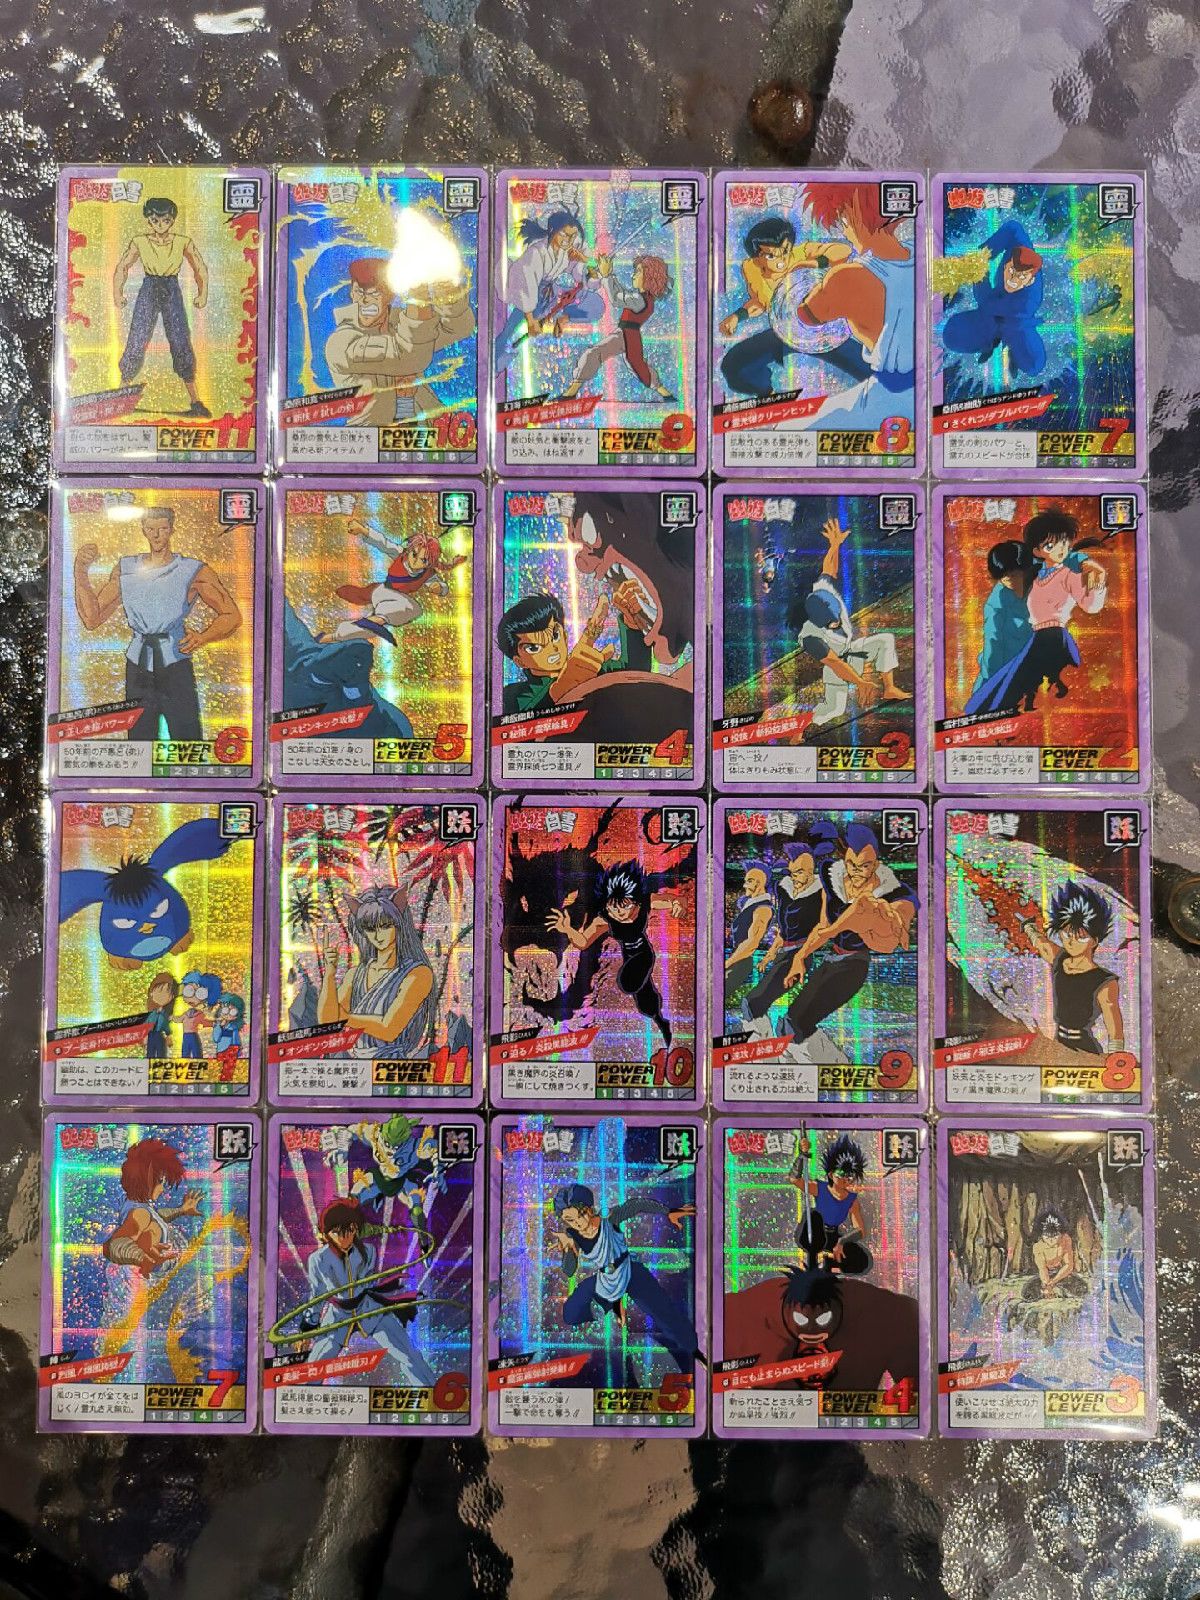 44pcs/set YuYu Hakusho Fighting Second Bomb Toys Hobbies Hobby Collectibles Game Collection Anime Cards